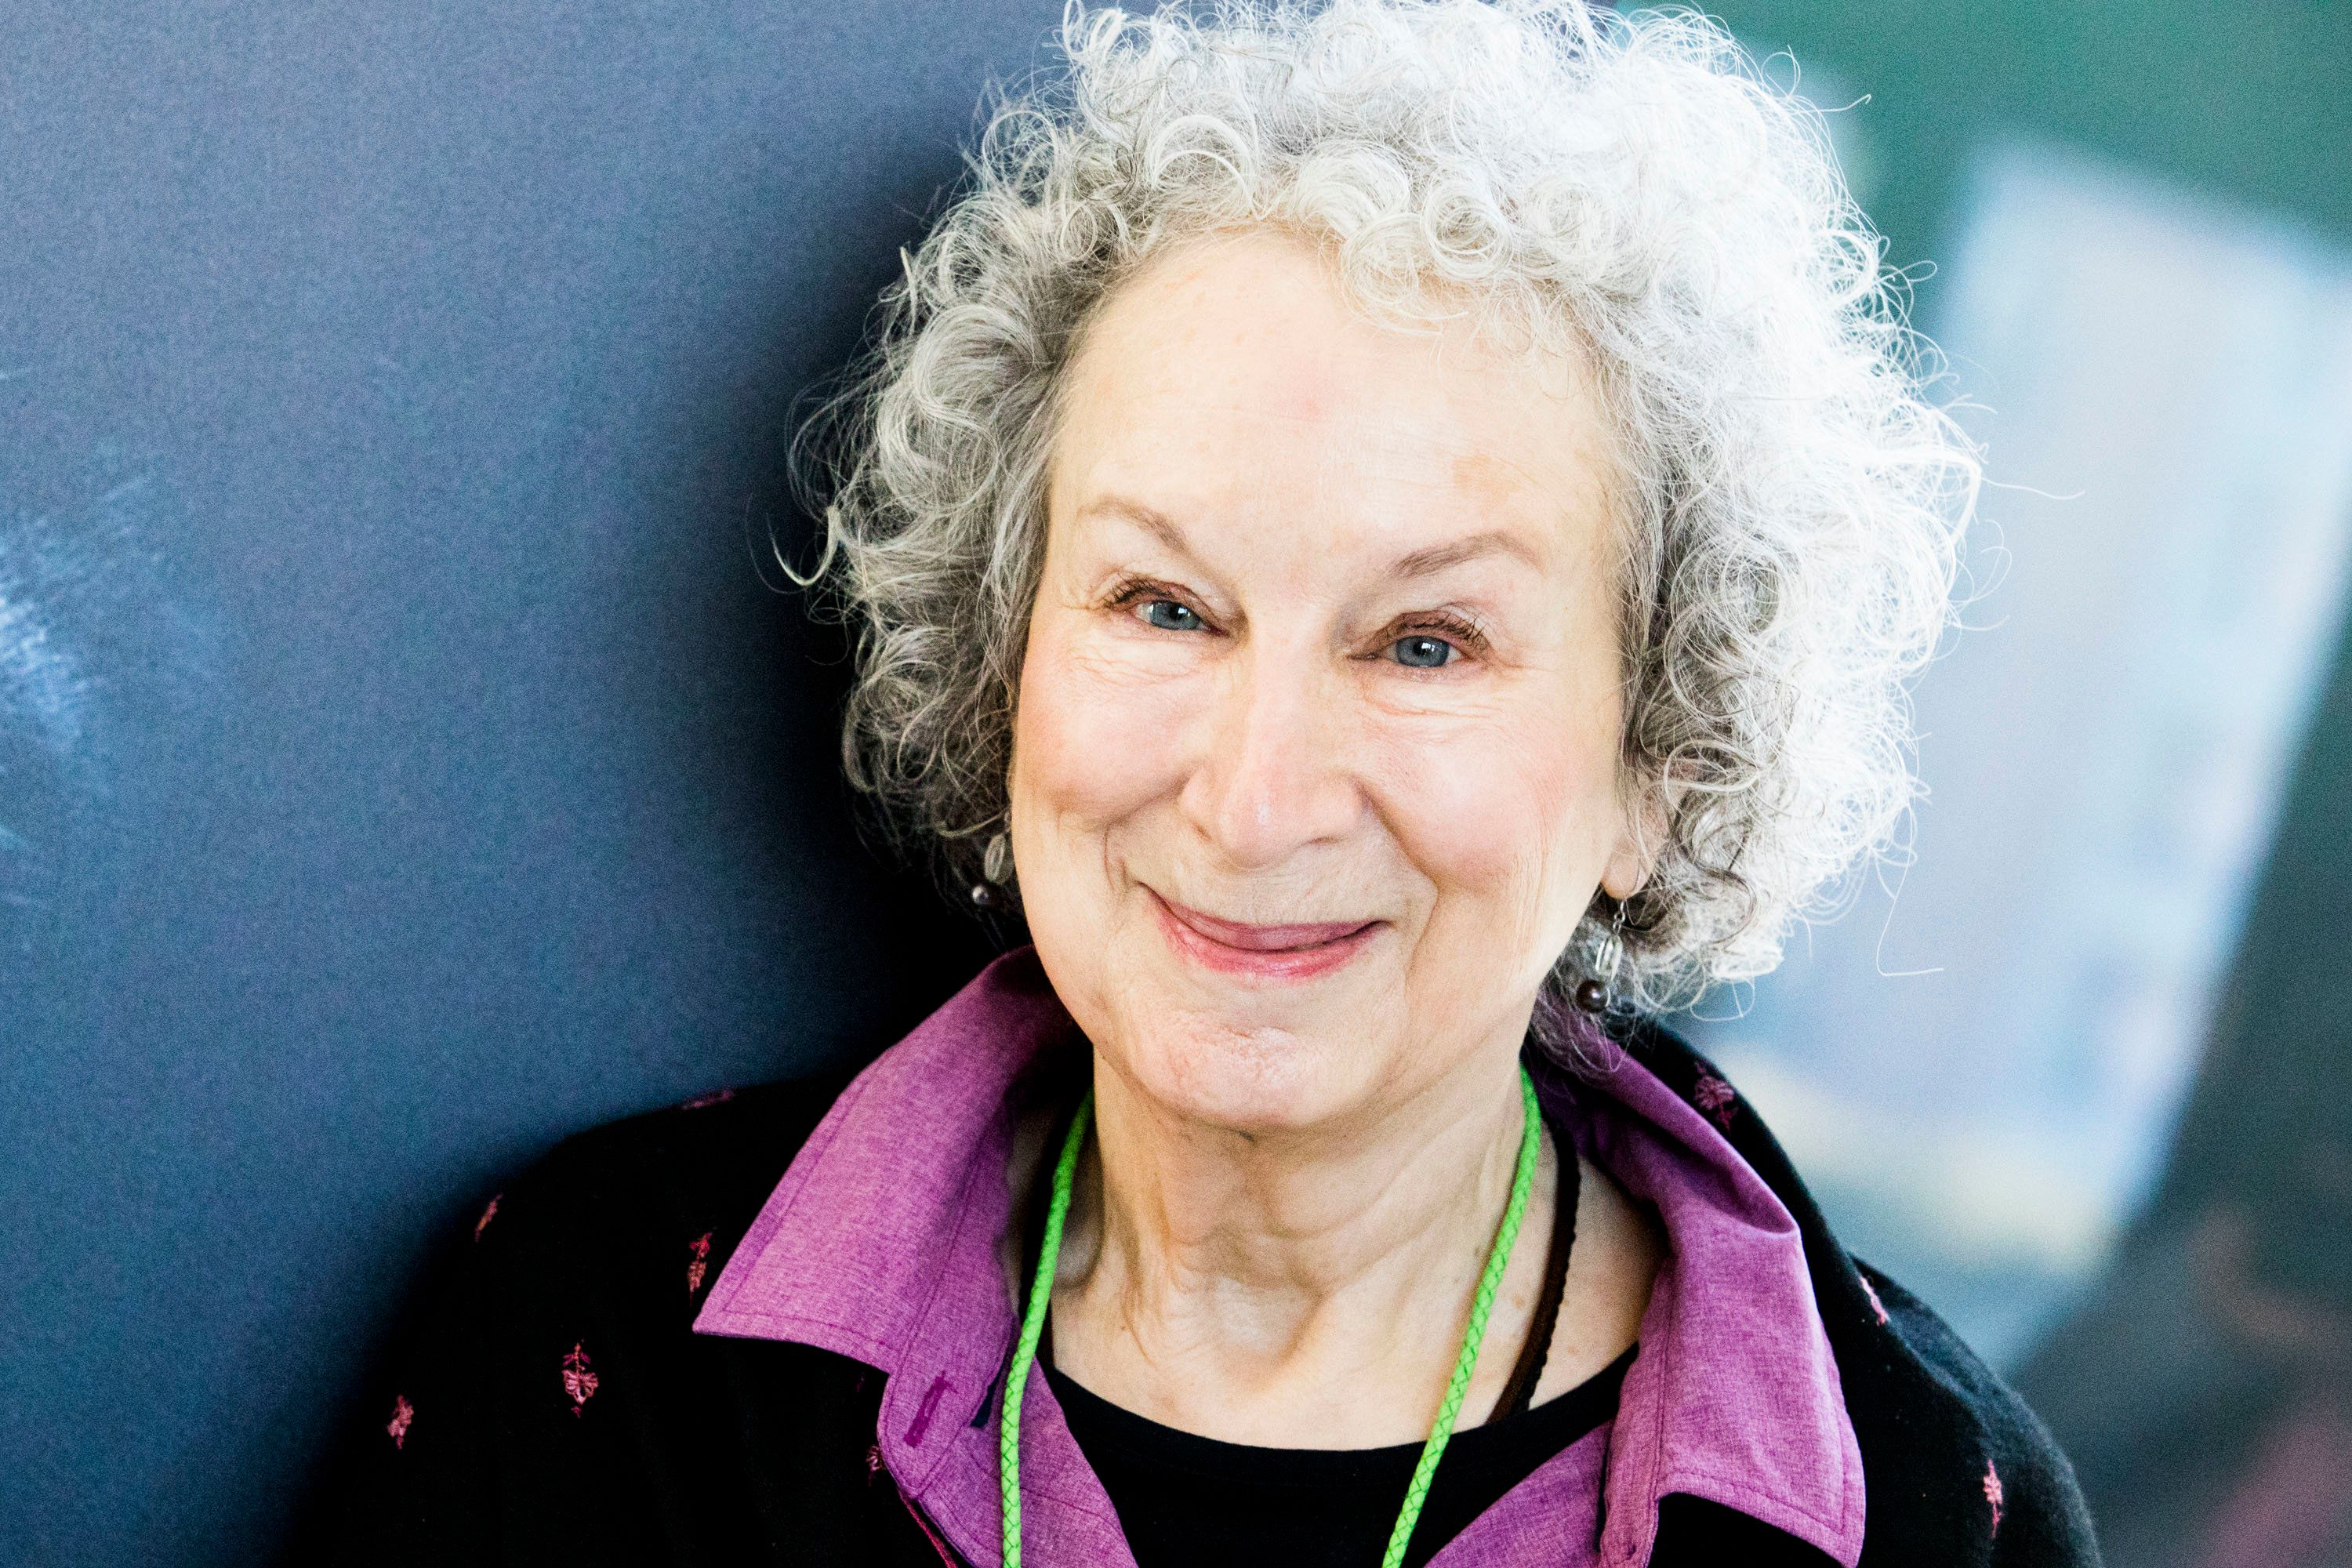 Under his eye: Margaret Atwood to publish sequel to The Handmaid's Tale